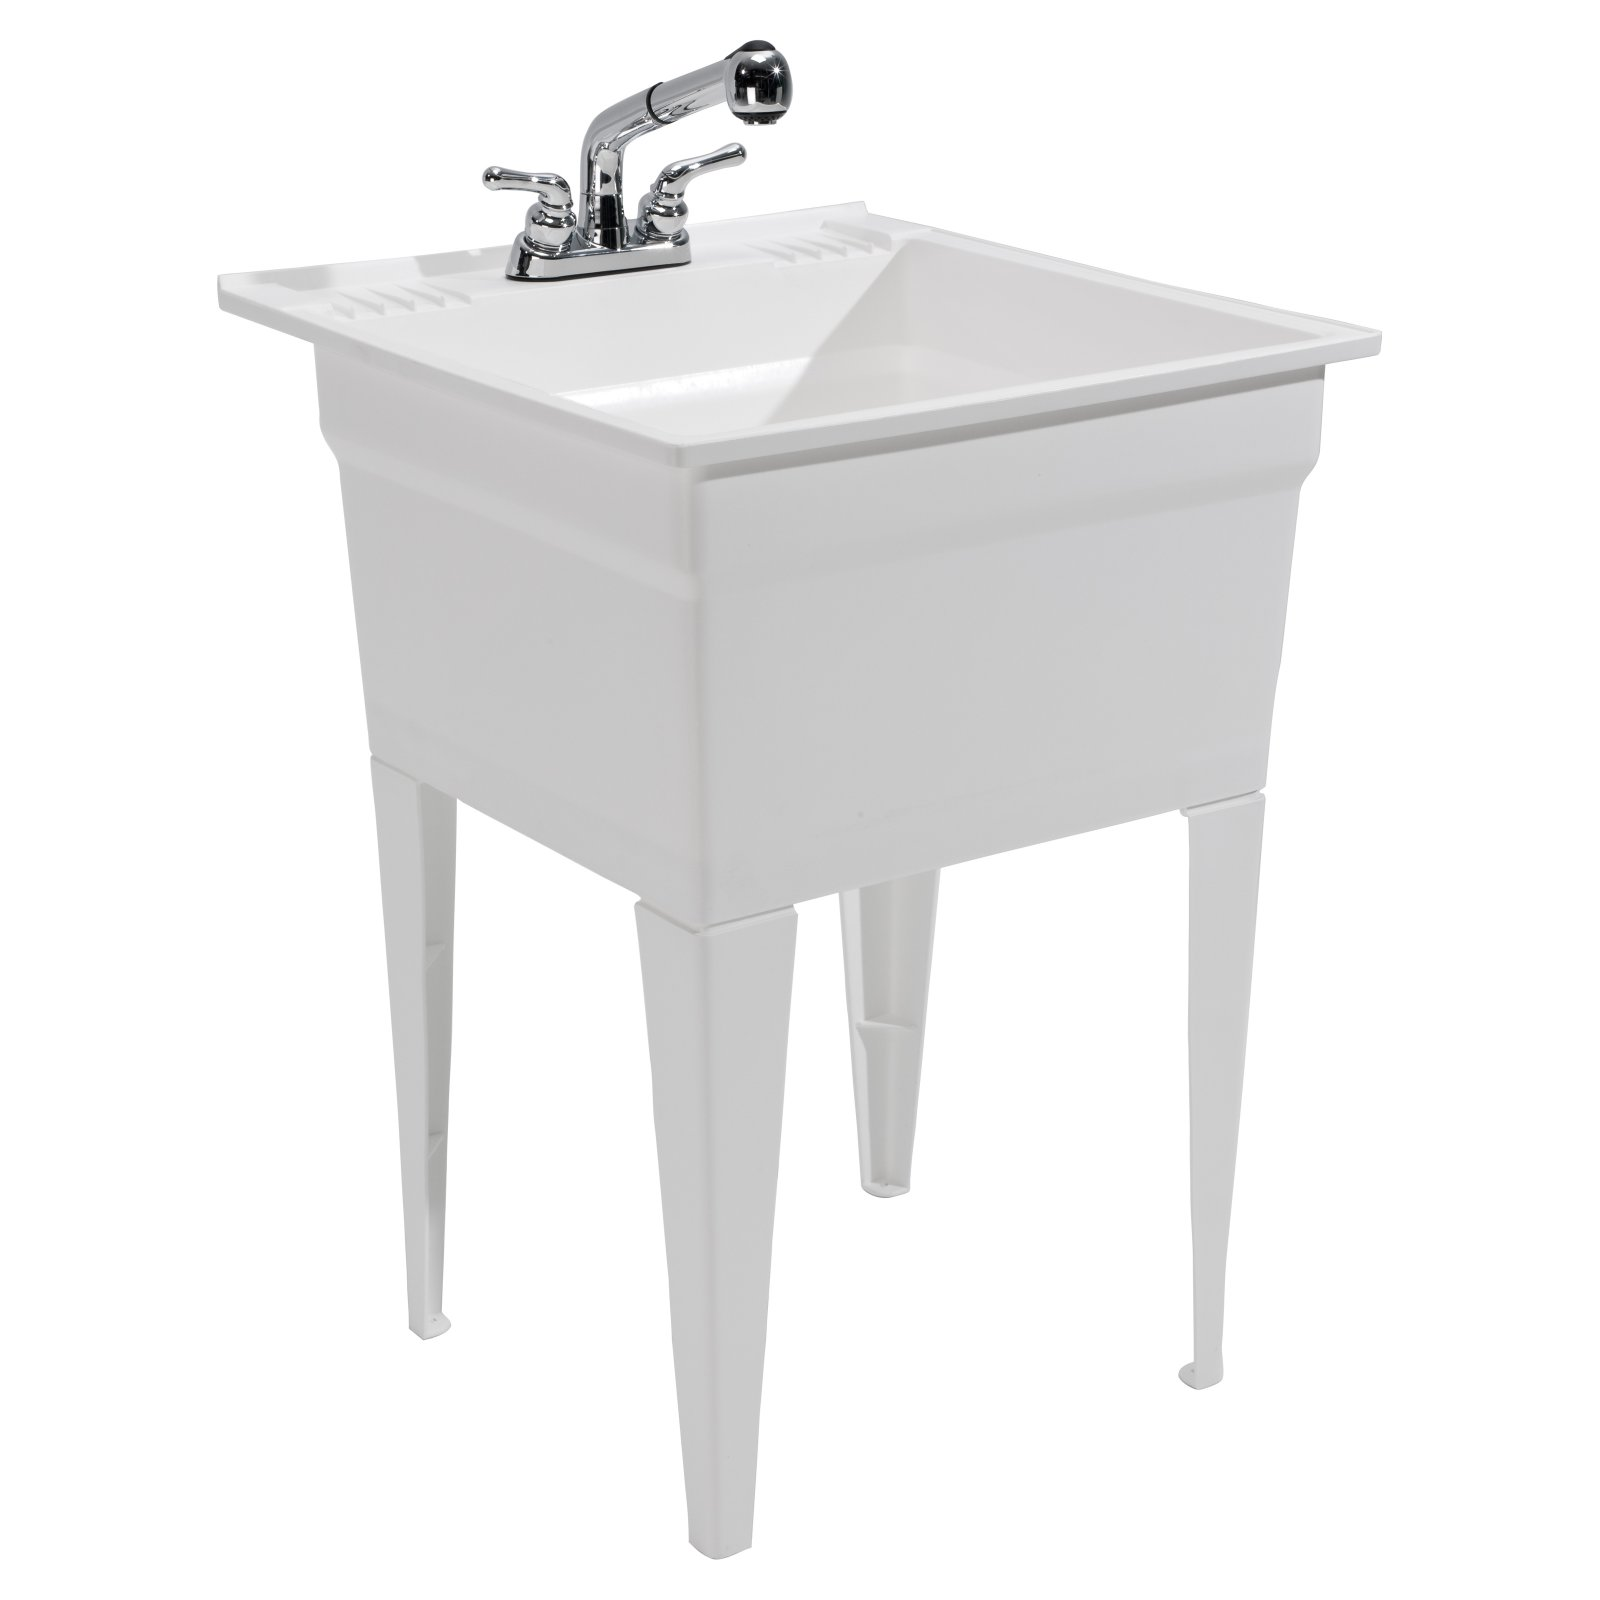 Heavy Duty Utility Sink Kit Free Standing Bathroom Toilet Vanity Square  Cabinet